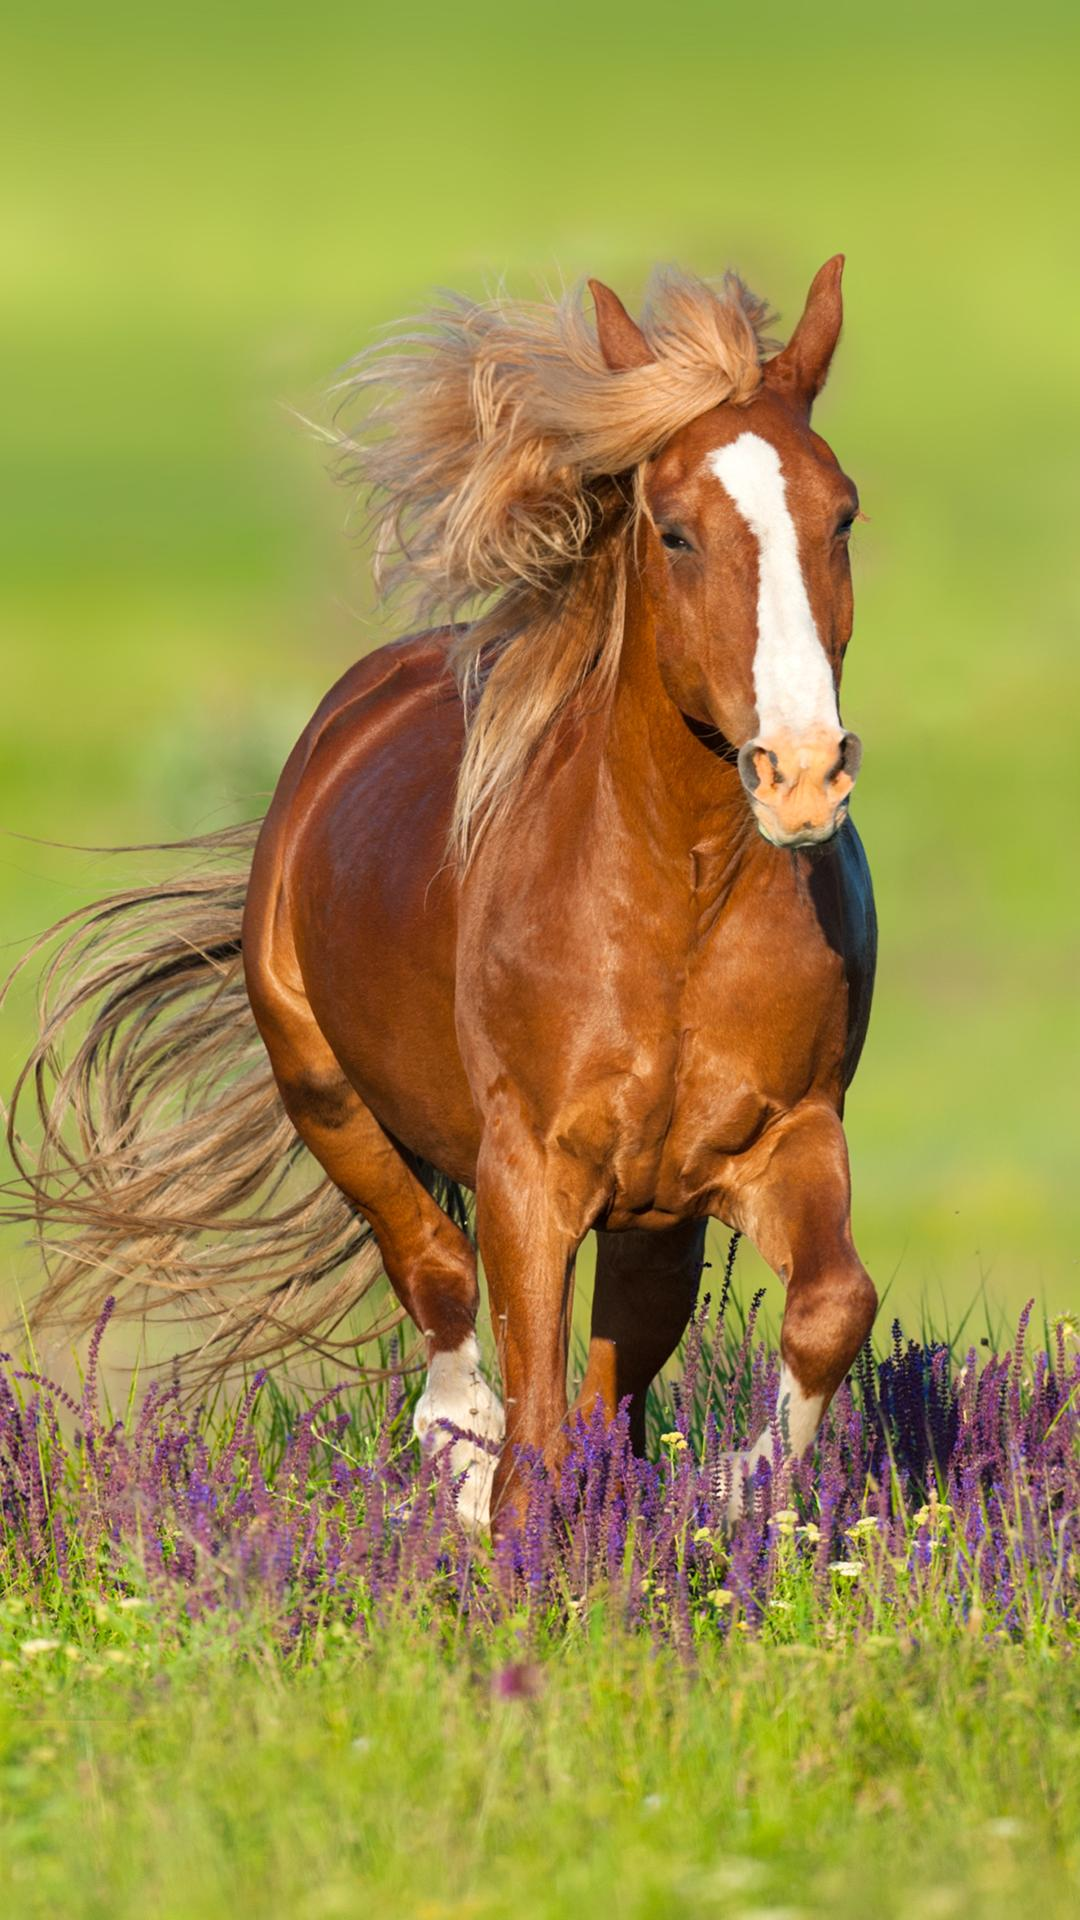 Horse Wallpapers For Android Apk Download